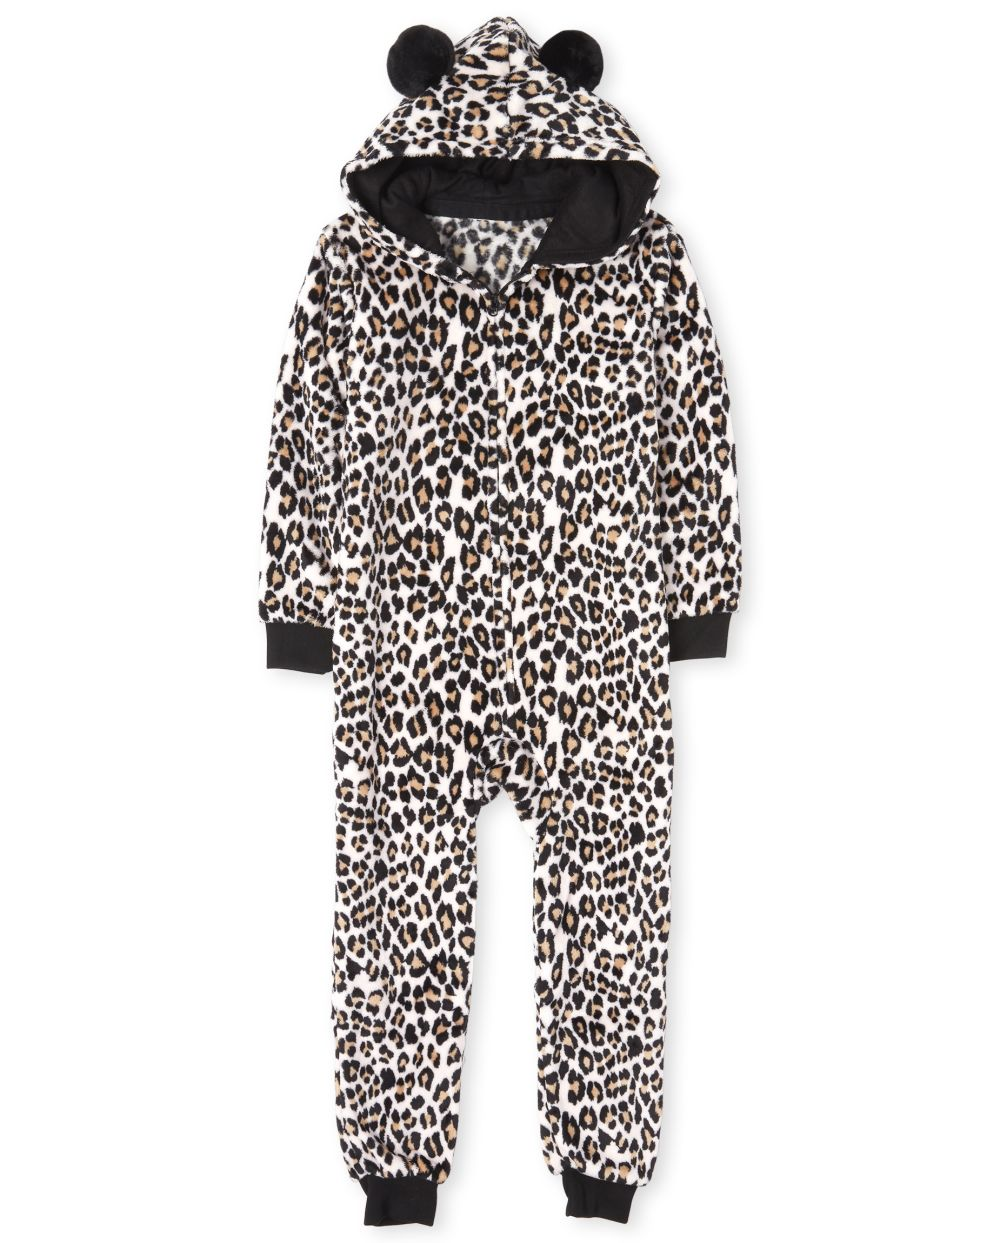 Girls Mommy And Me Leopard Fleece Matching One Piece Pajamas